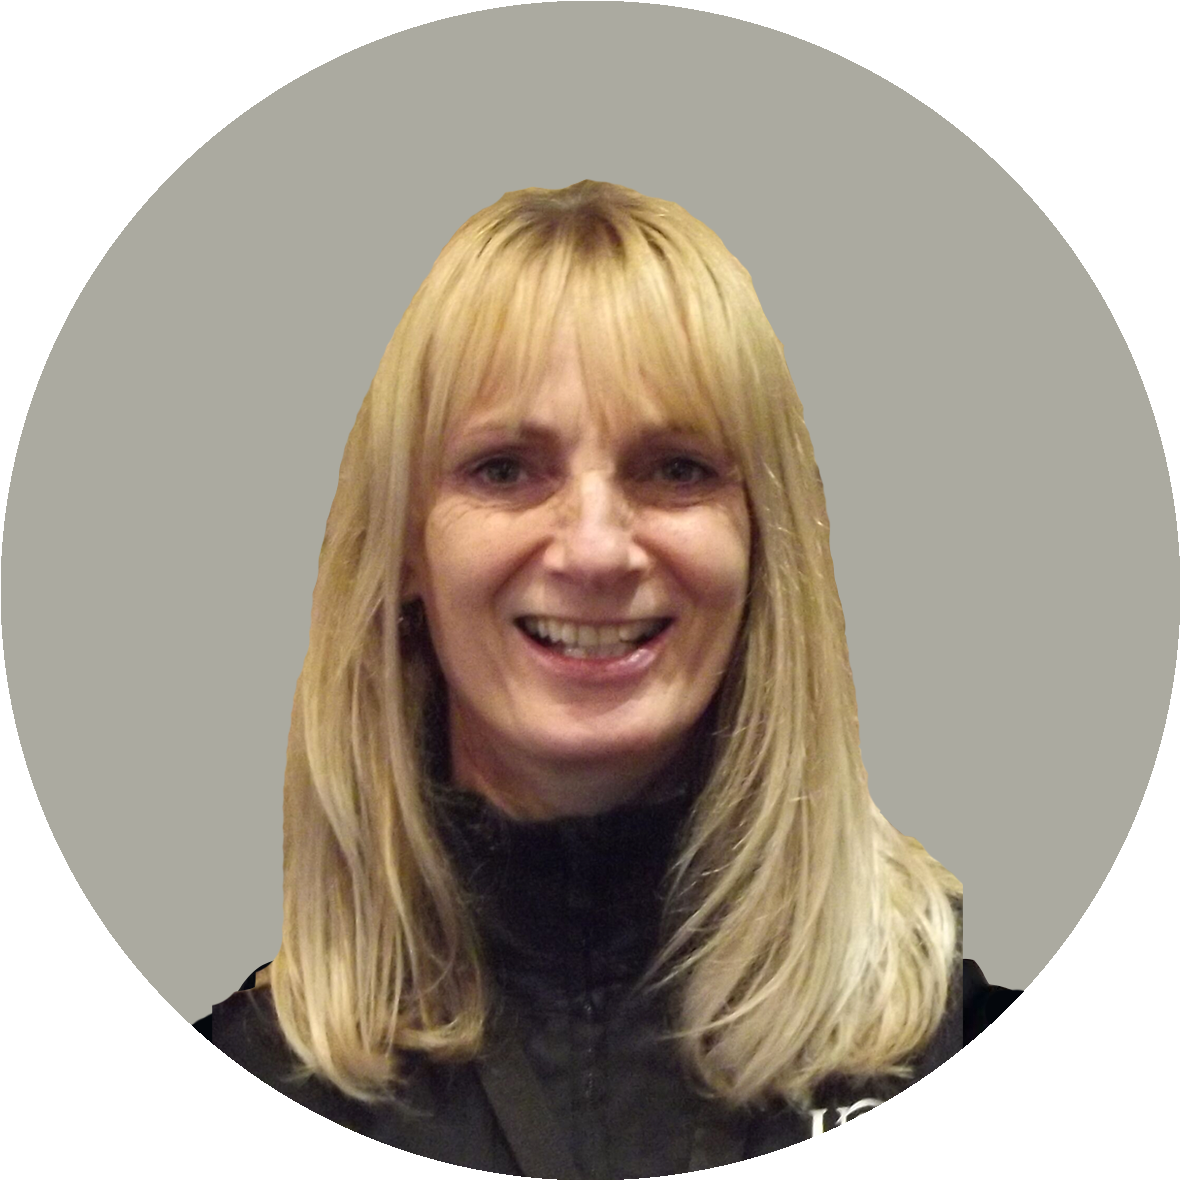 Sarah Rutter-Smith - Learning & Development Manager